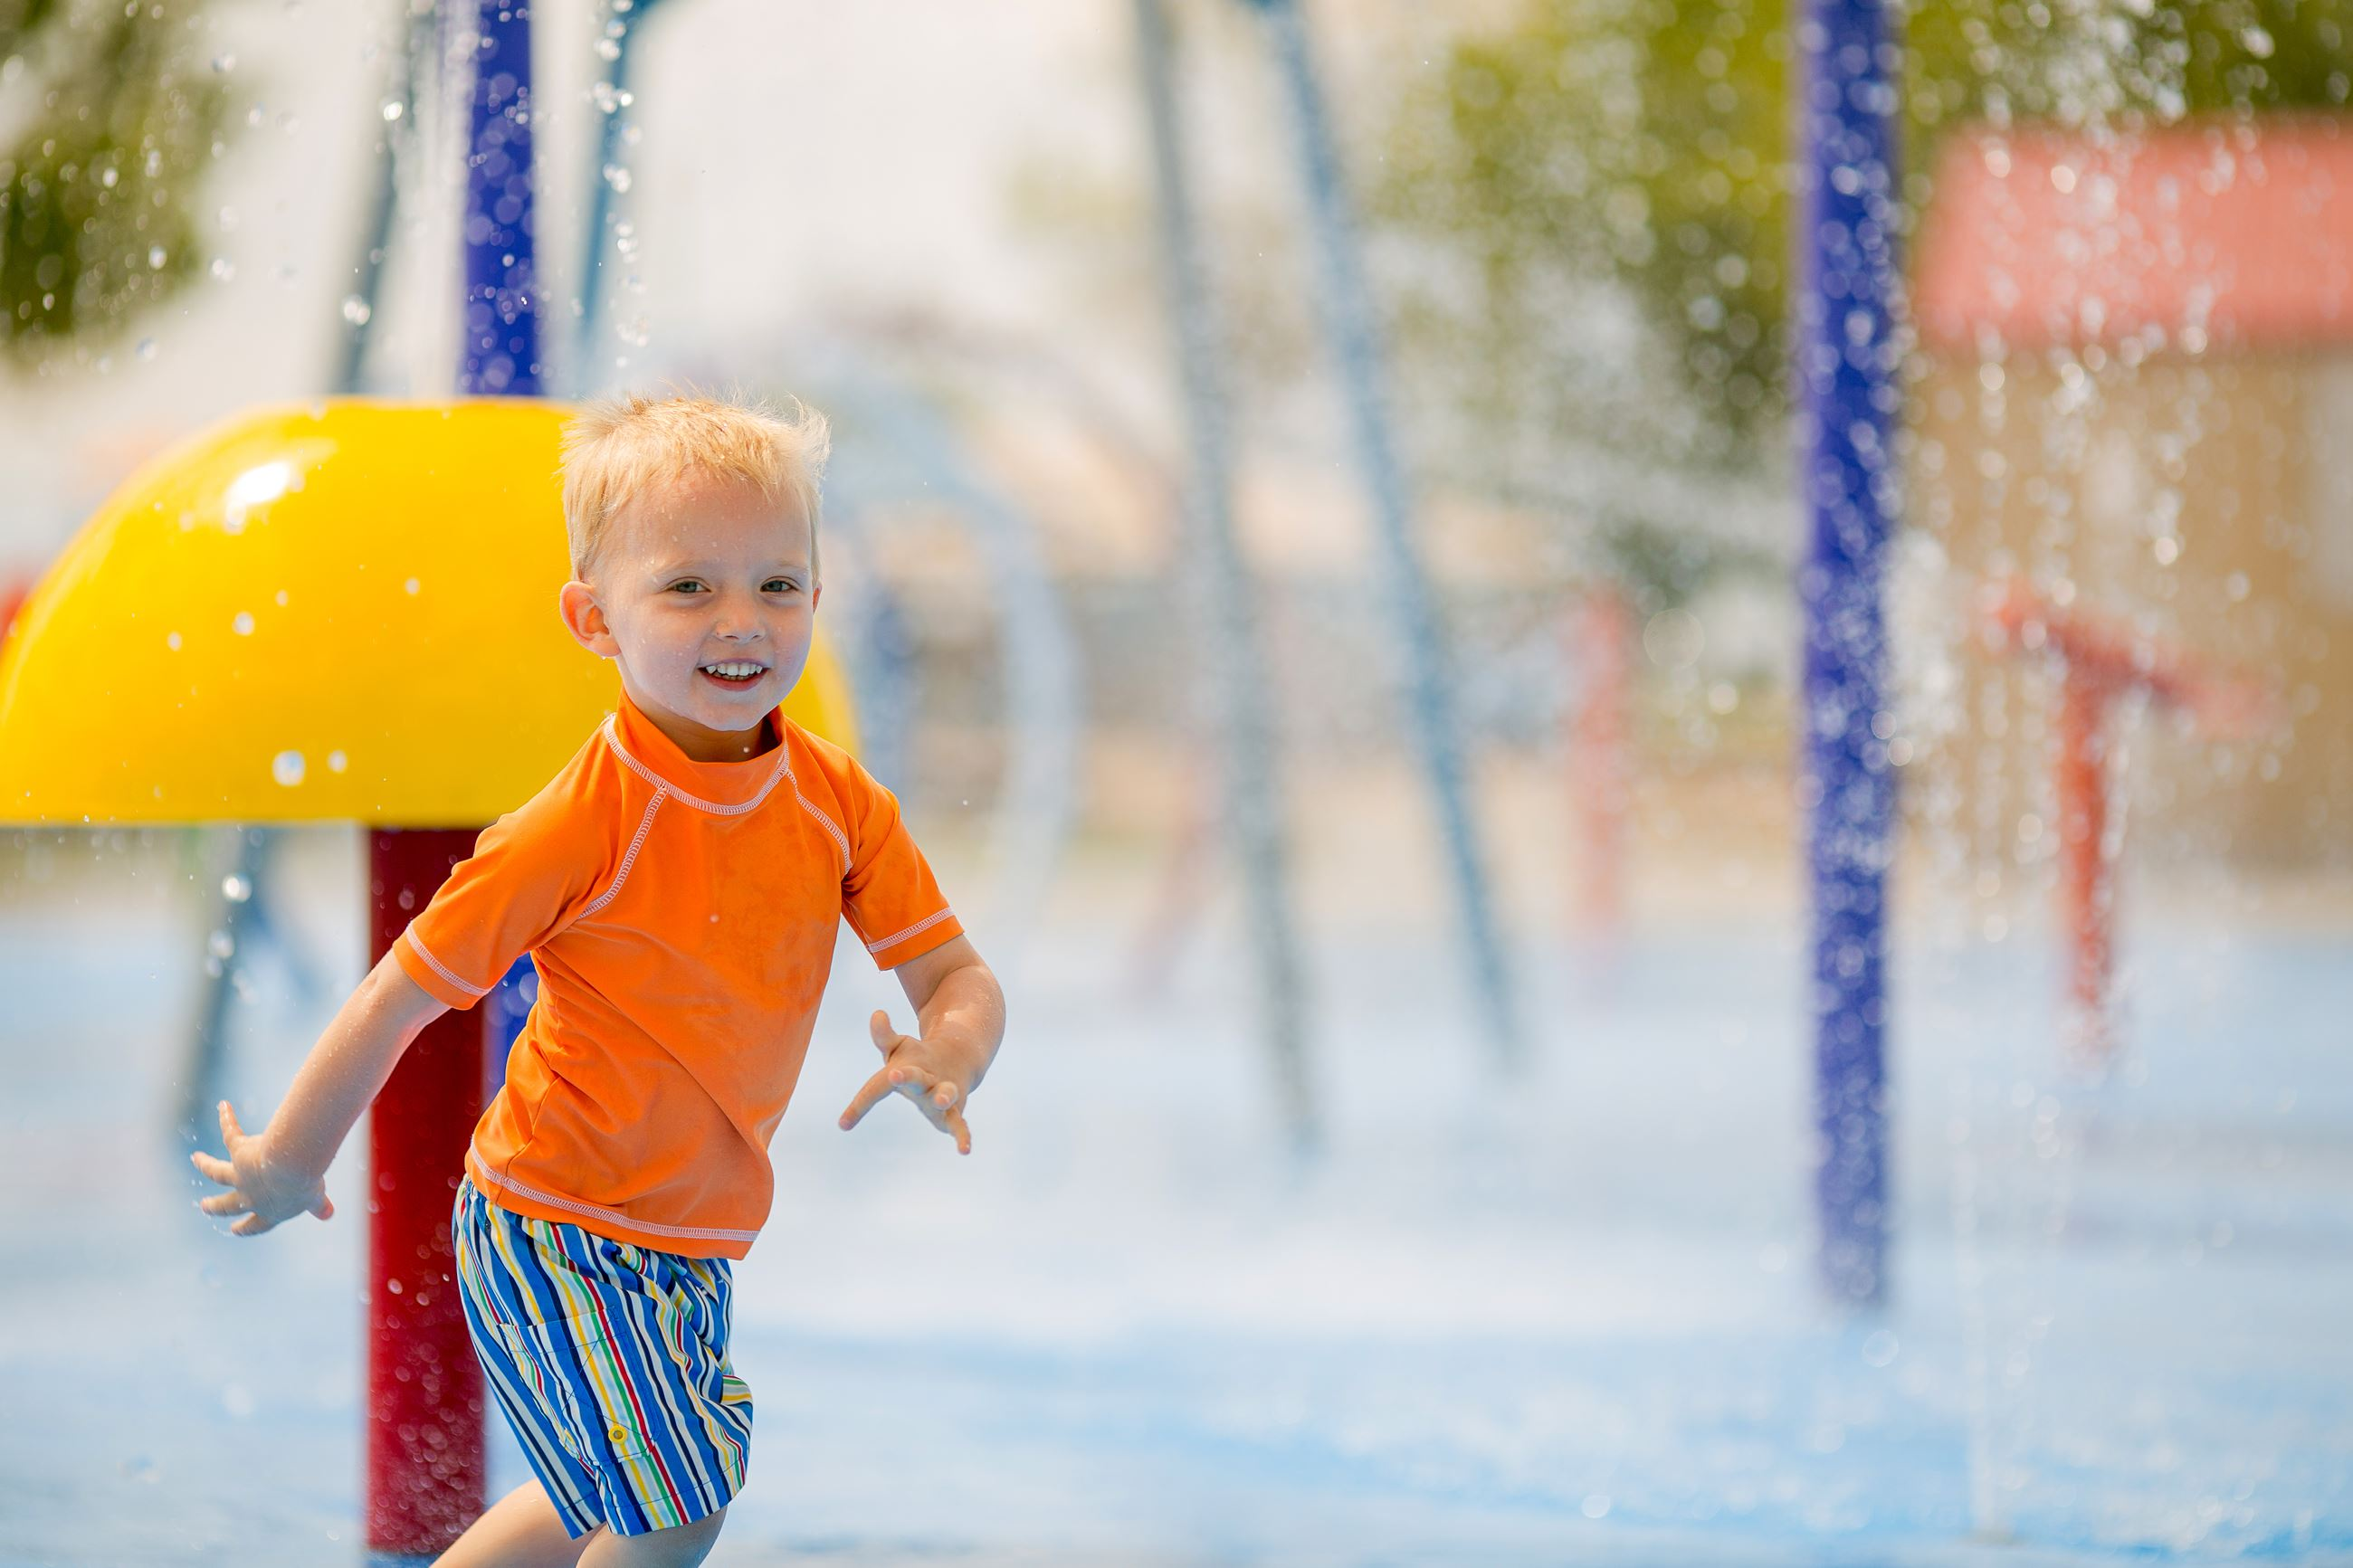 Splash Pad at Clem Dufour